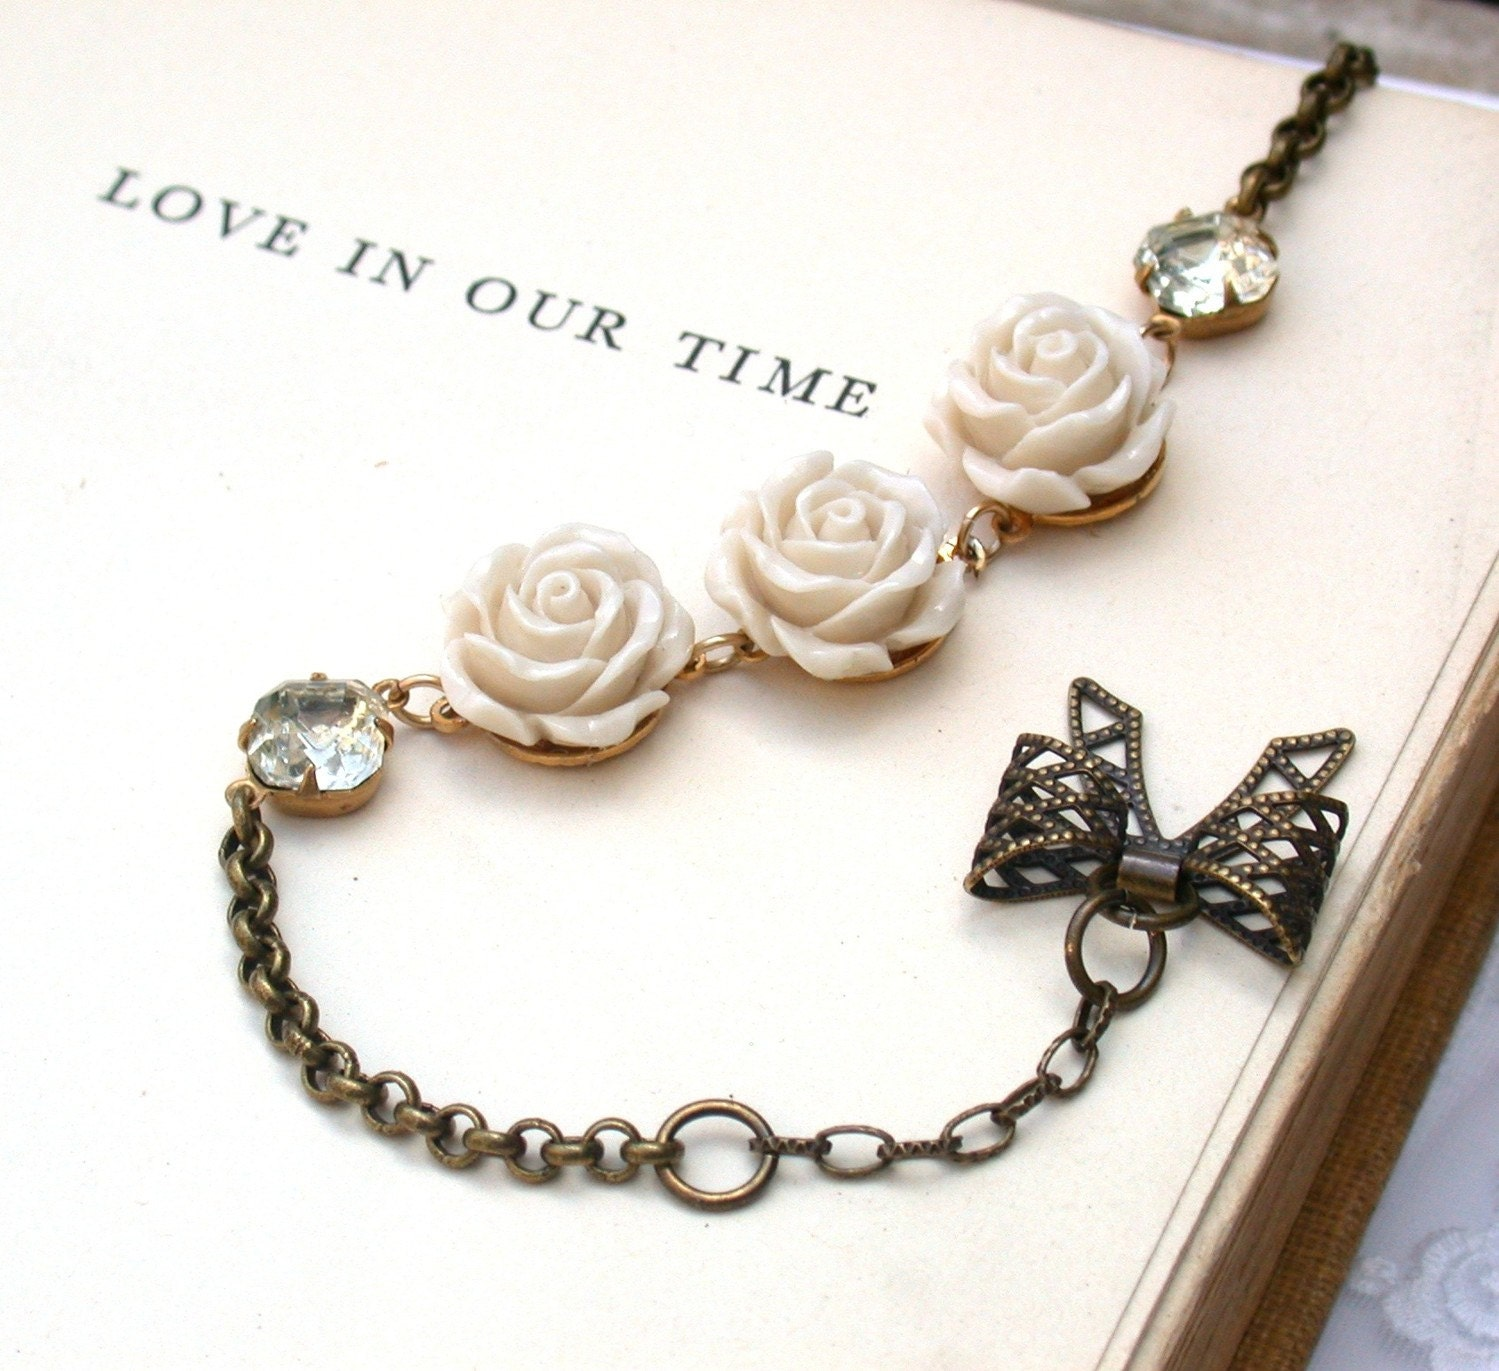 A Vintage Romantic  Glass Clear Crystal Rhinestone And Creamy Roses Bracelet